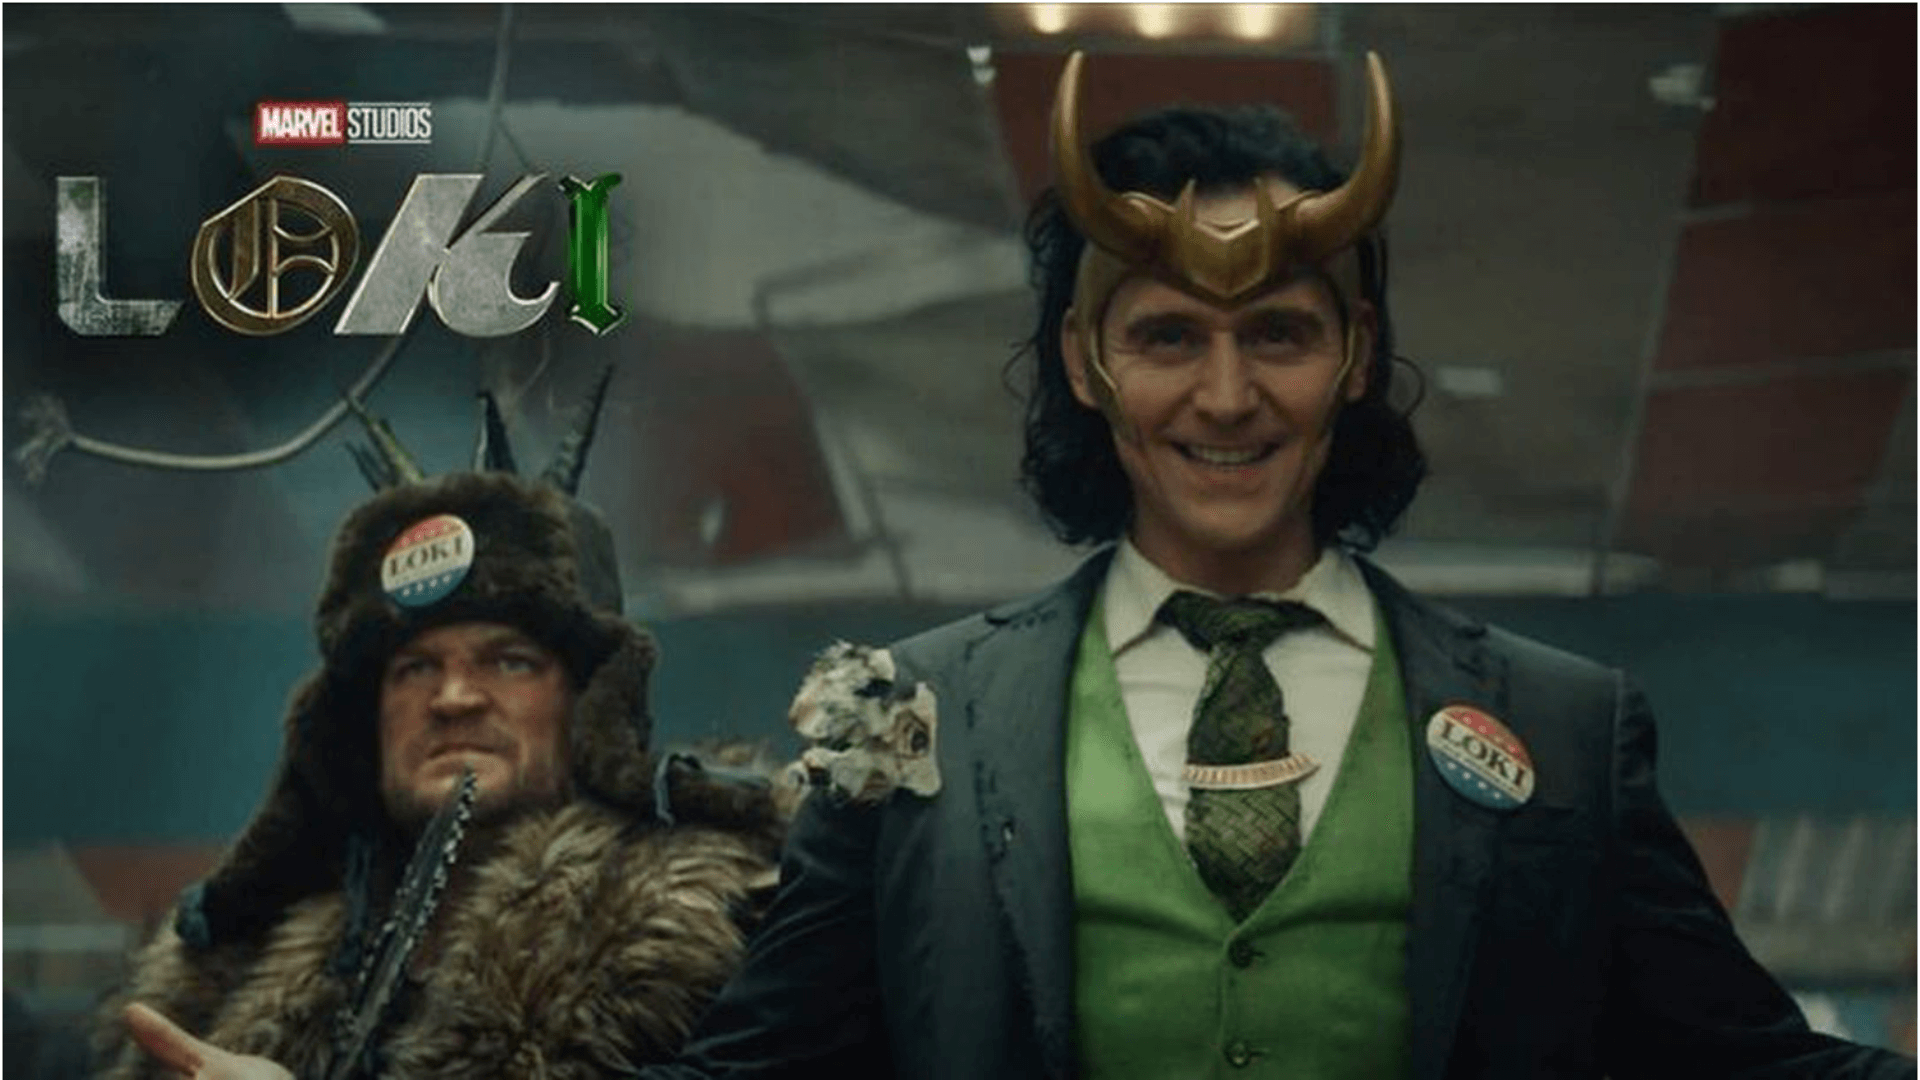 MCU Loki Vs Norse Loki: What's the Difference?